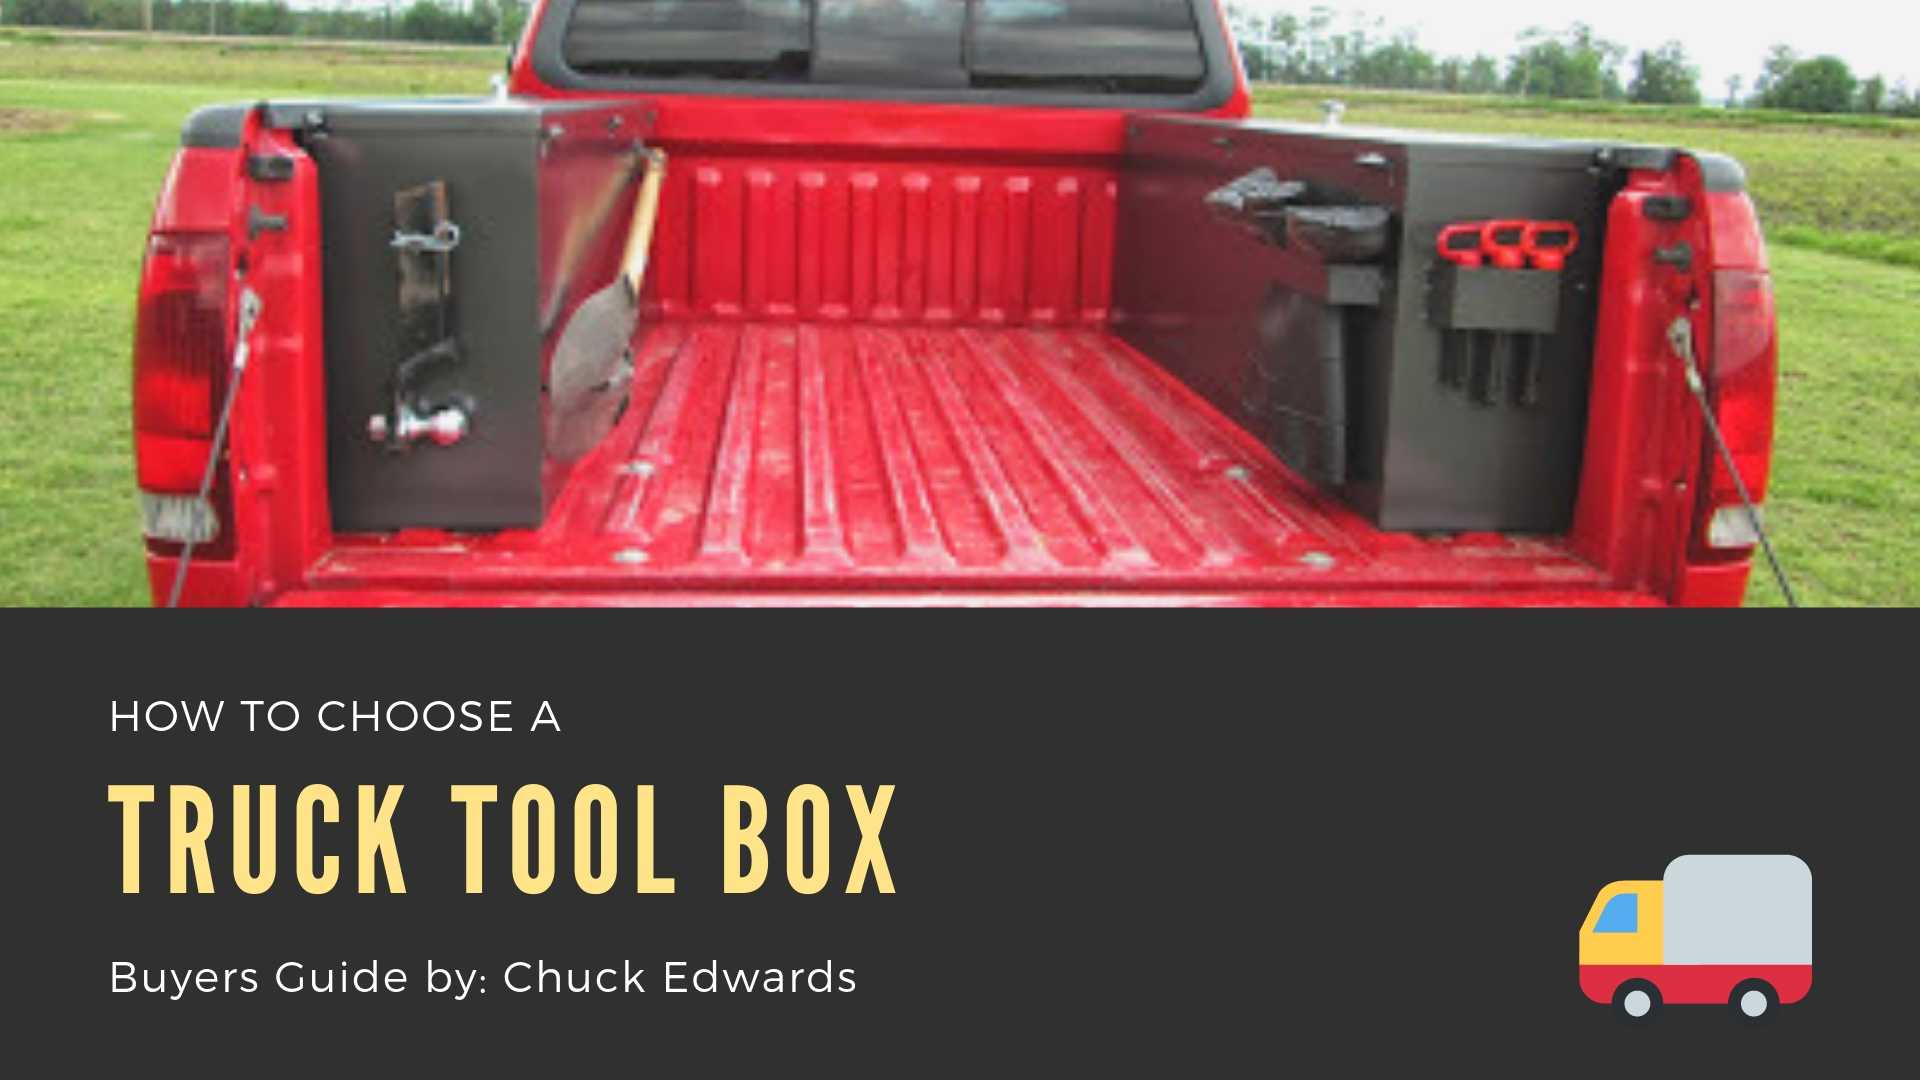 15 Best Truck Tool Boxes Organize Your Truck Bed Reviews Comparisons 2020